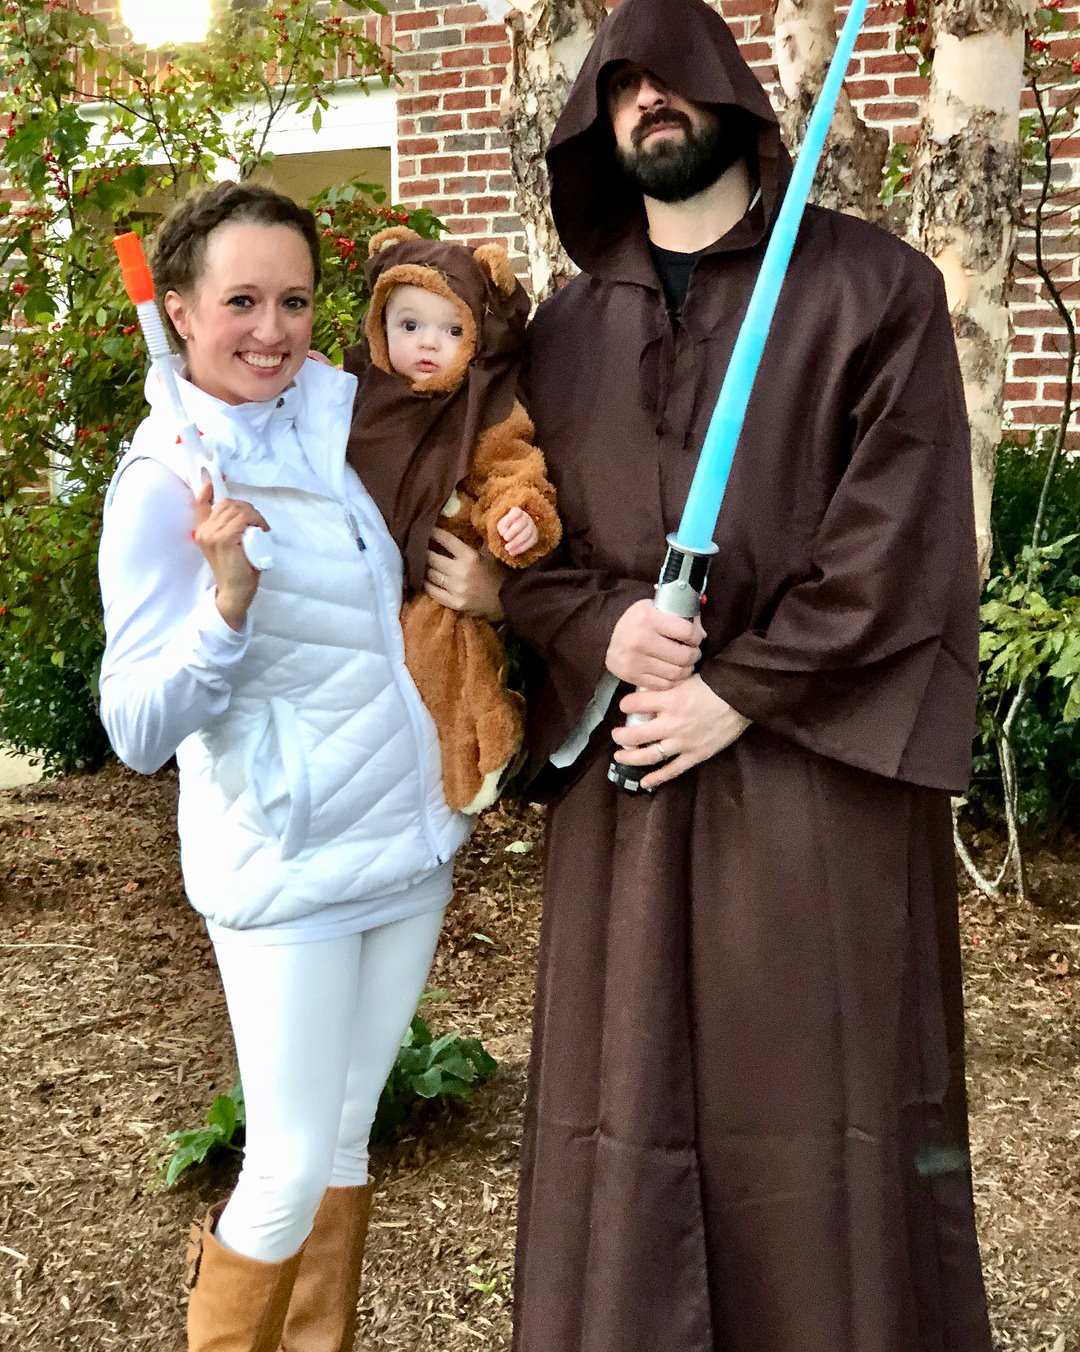 Melissa Boone with her husband Adam, and their son Lincoln dressed up as Star Wars characters for Halloween.